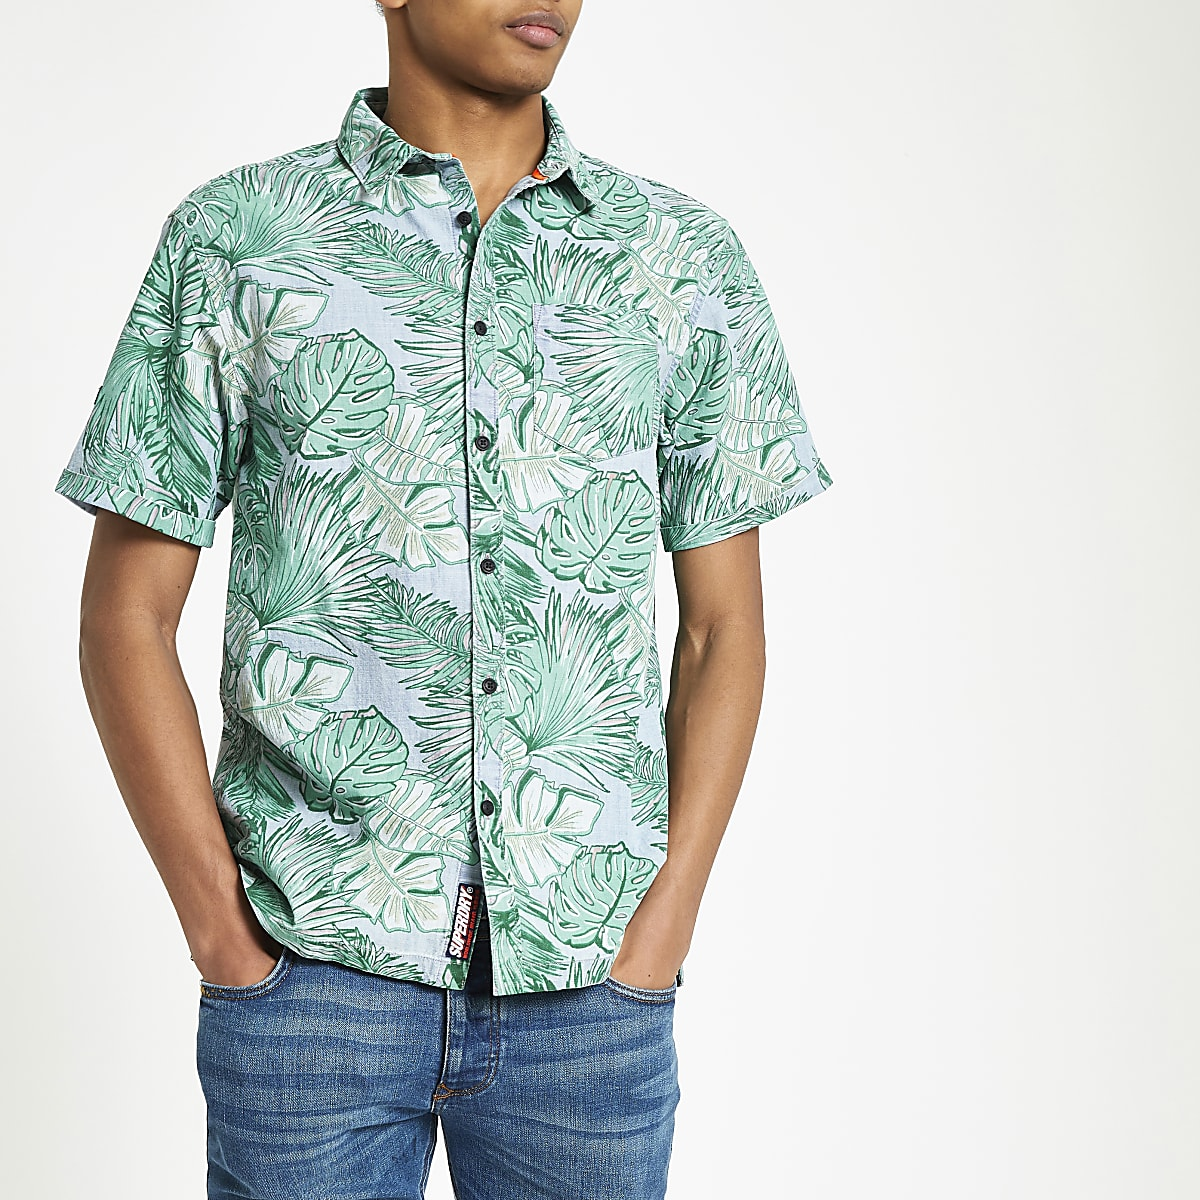 Superdry blue leaf print regular fit shirt